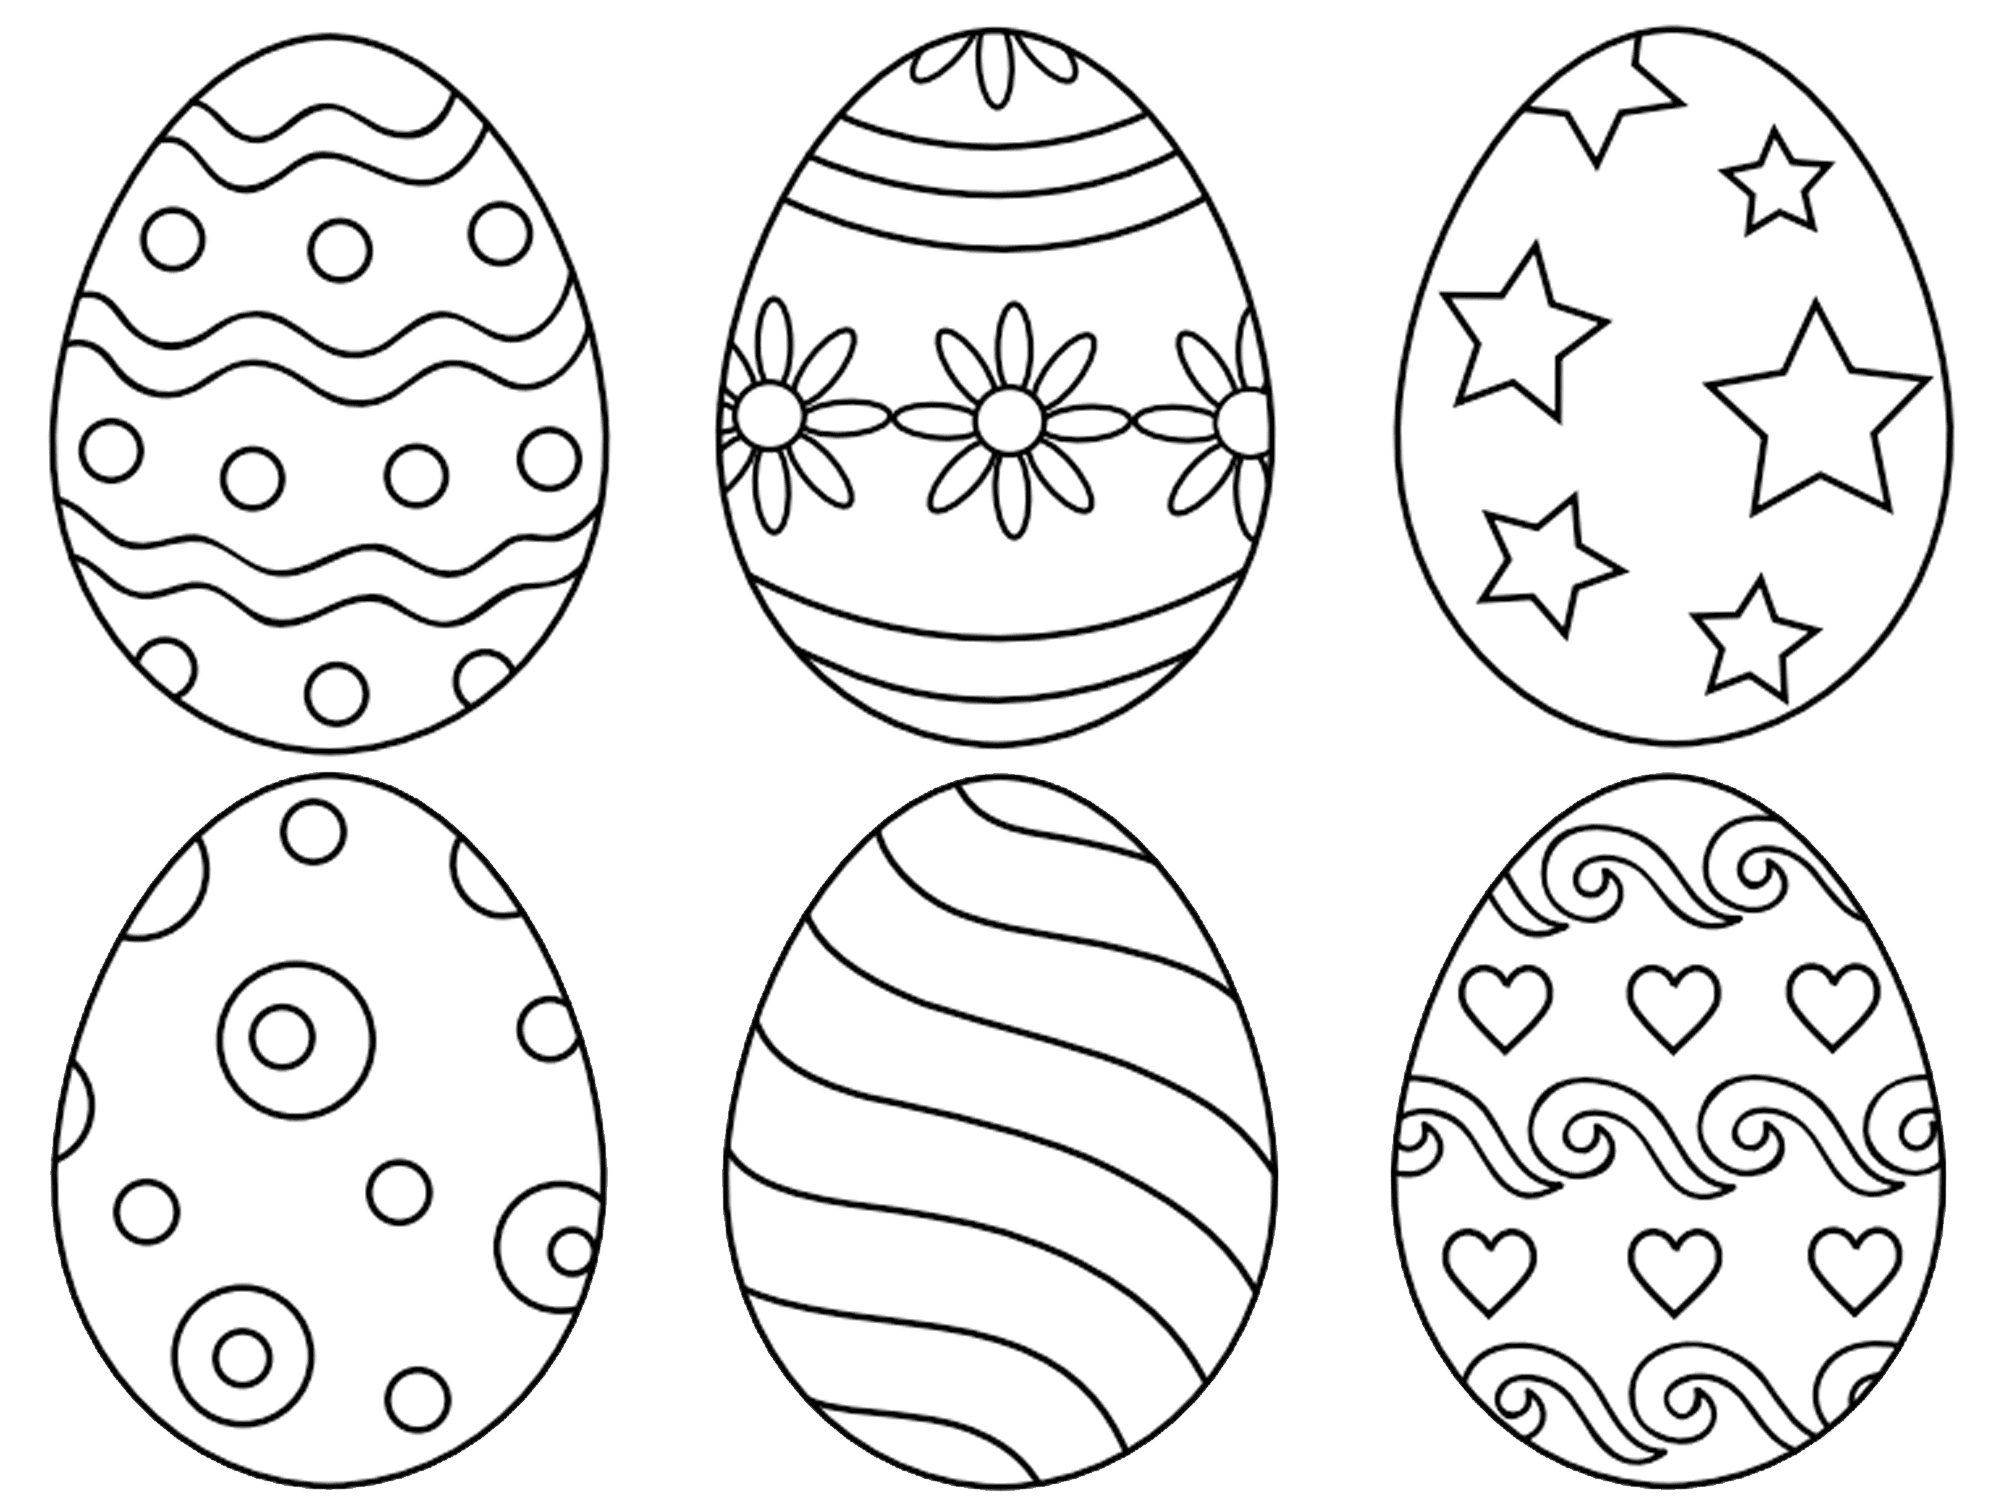 217 free printable easter egg coloring pages pronofoot35fo Images